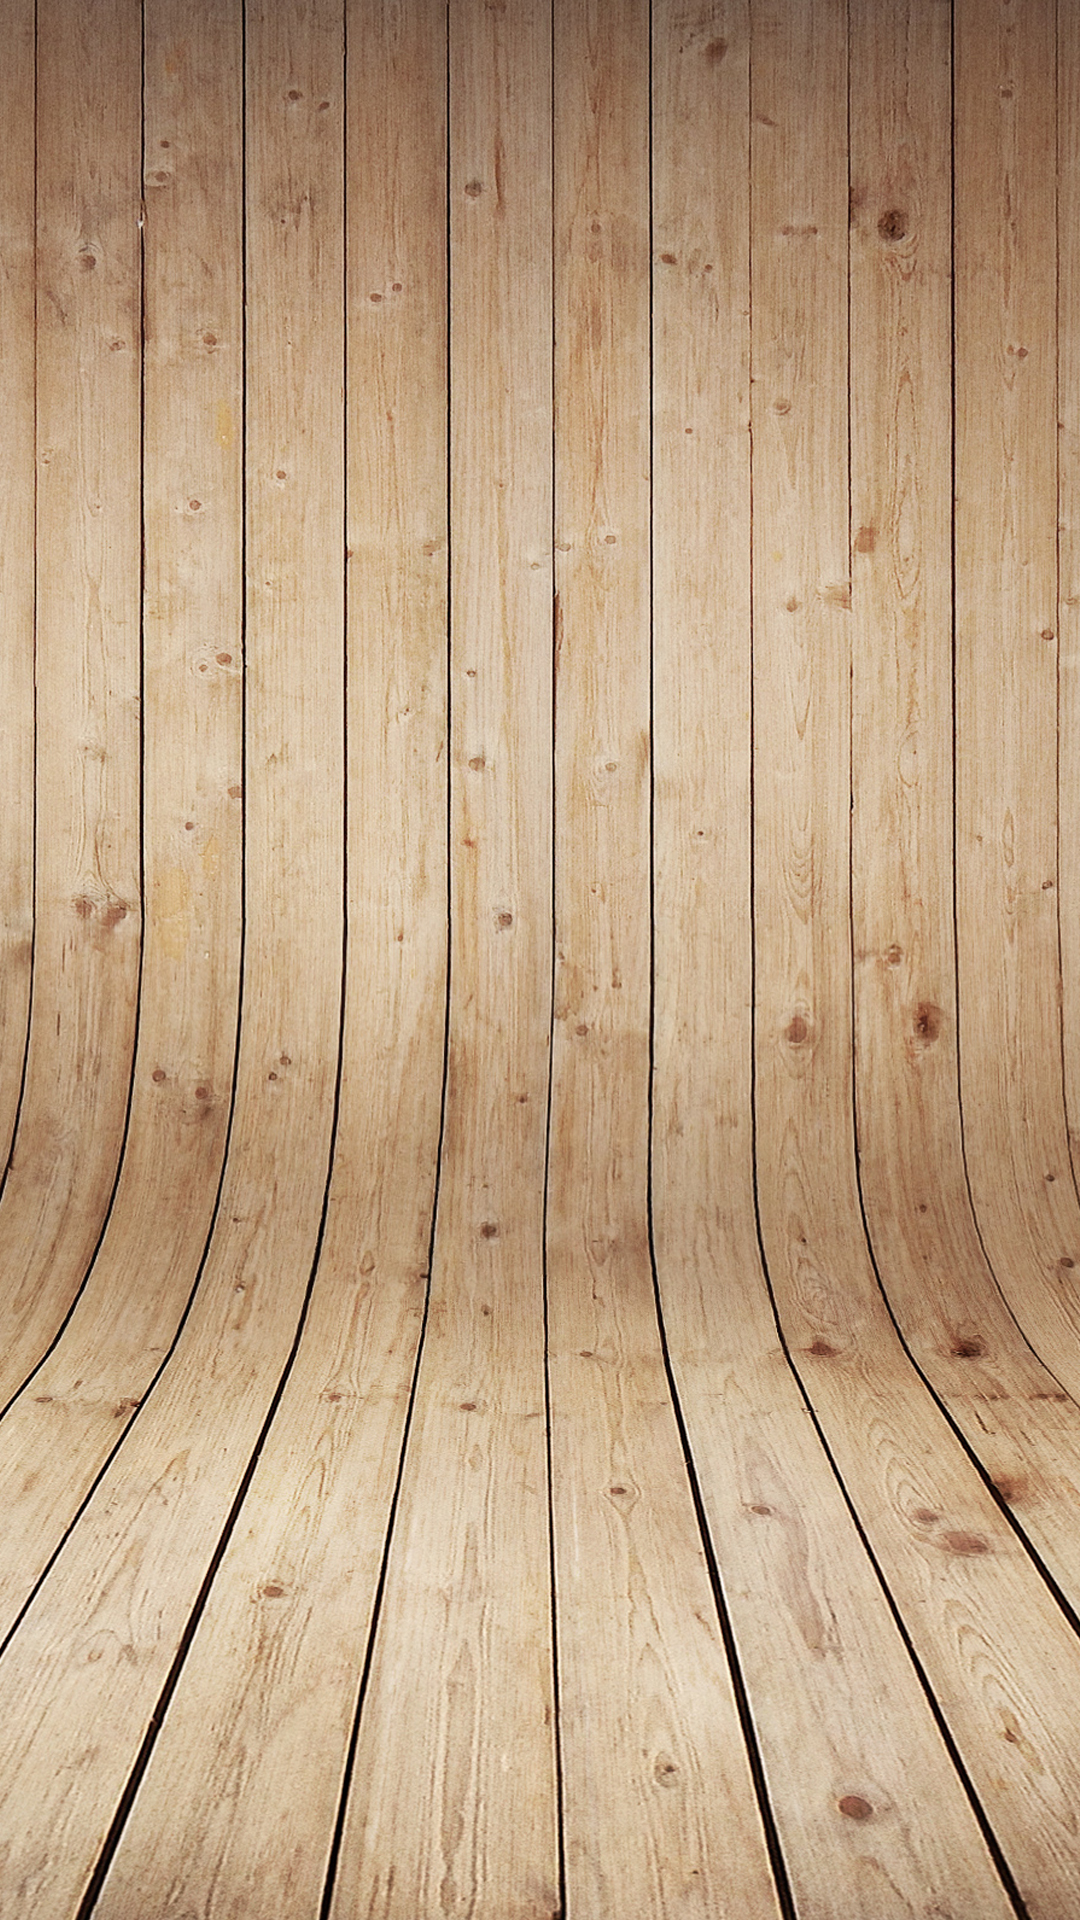 Free HD Curved Wood Phone Wallpaper   3321 Curved Wood Phone Wallpaper